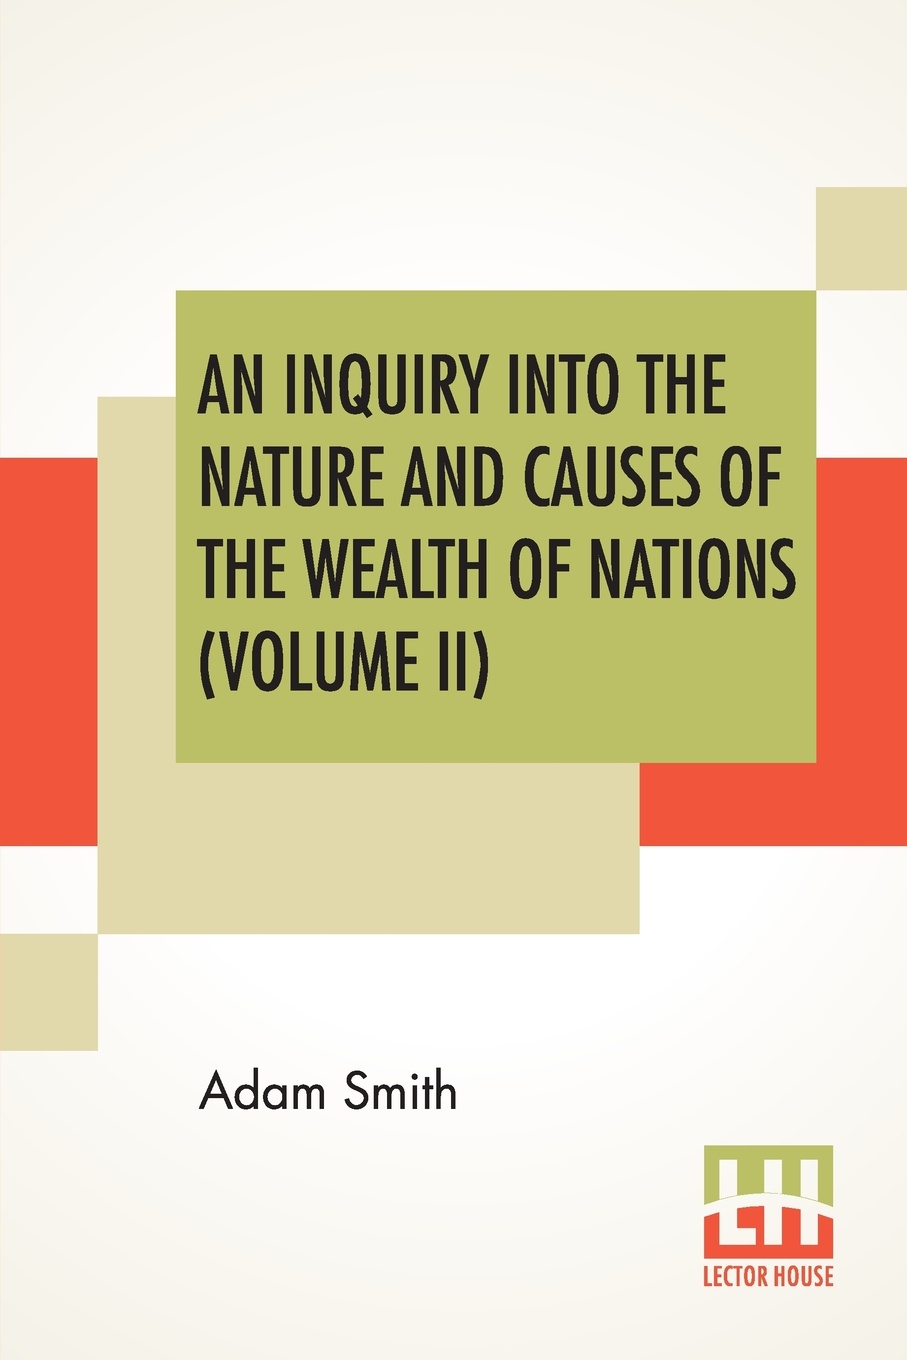 An Inquiry Into The Nature And Causes Of The Wealth Of Nations (Volume II) This book is a result of an effort made by us towards making...